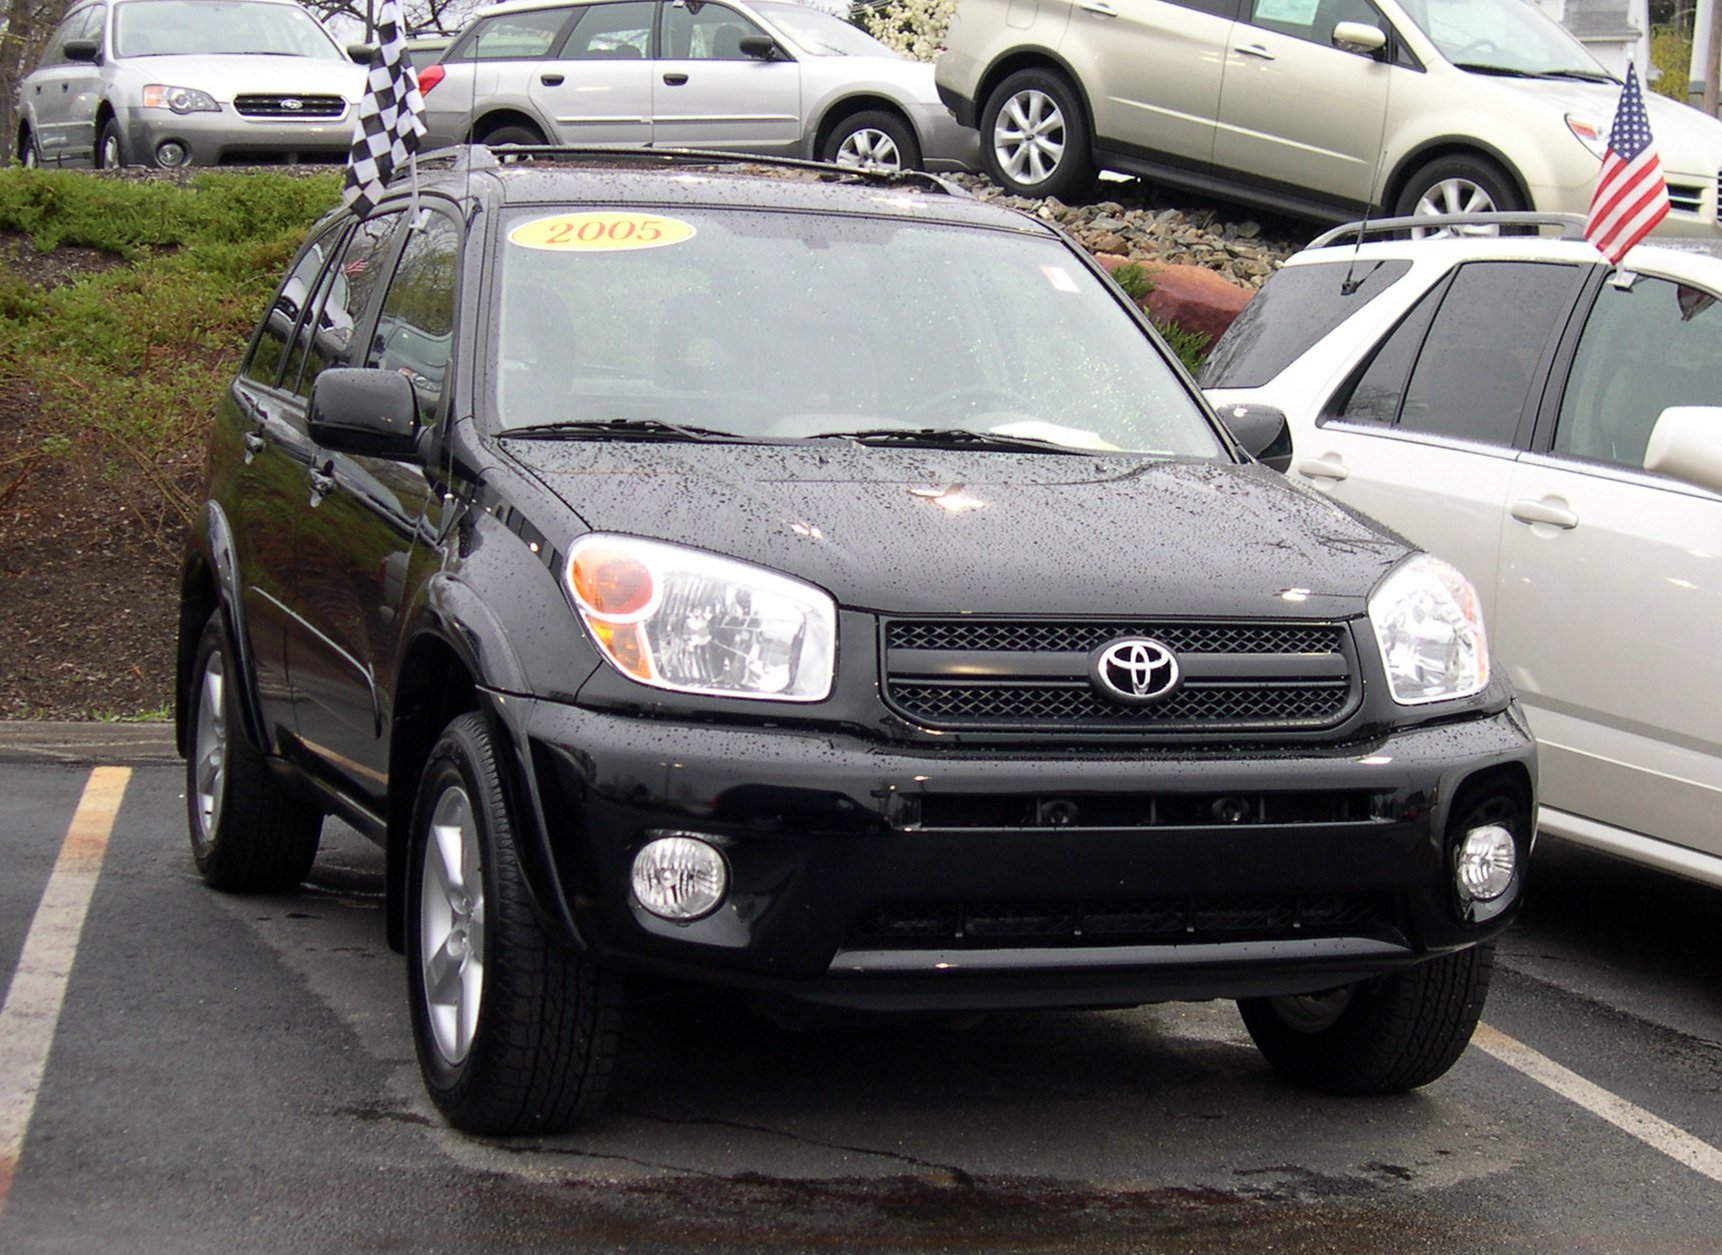 Toyota RAV4 2004 photo - 5